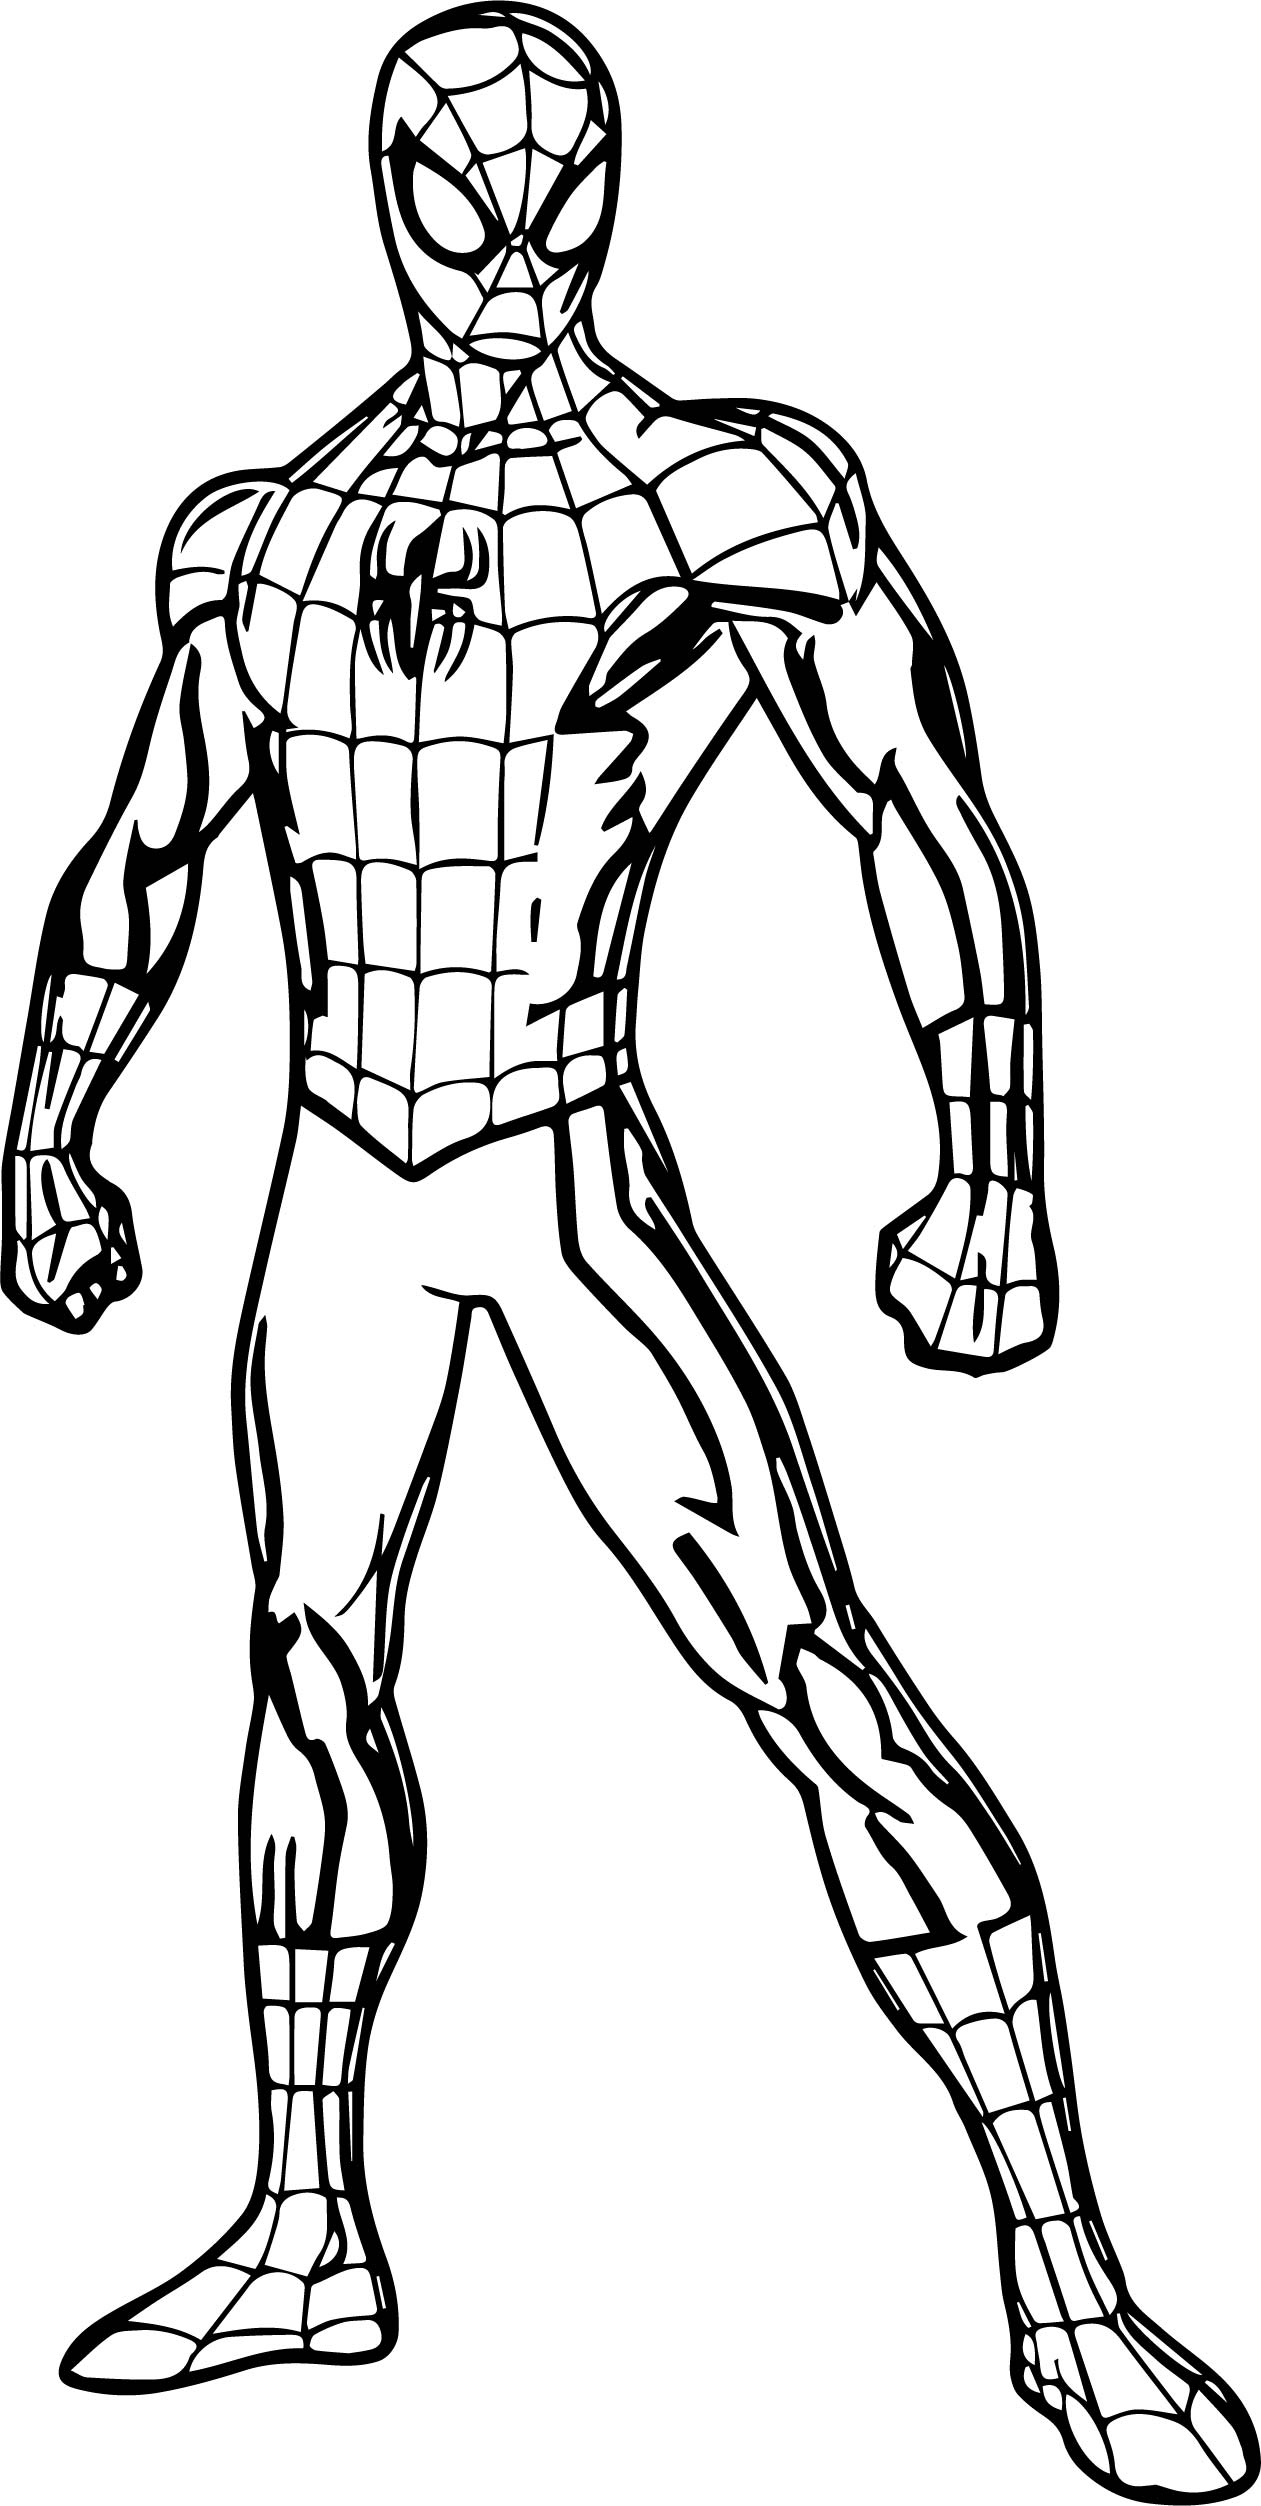 Spiderman Coloring Page Standing